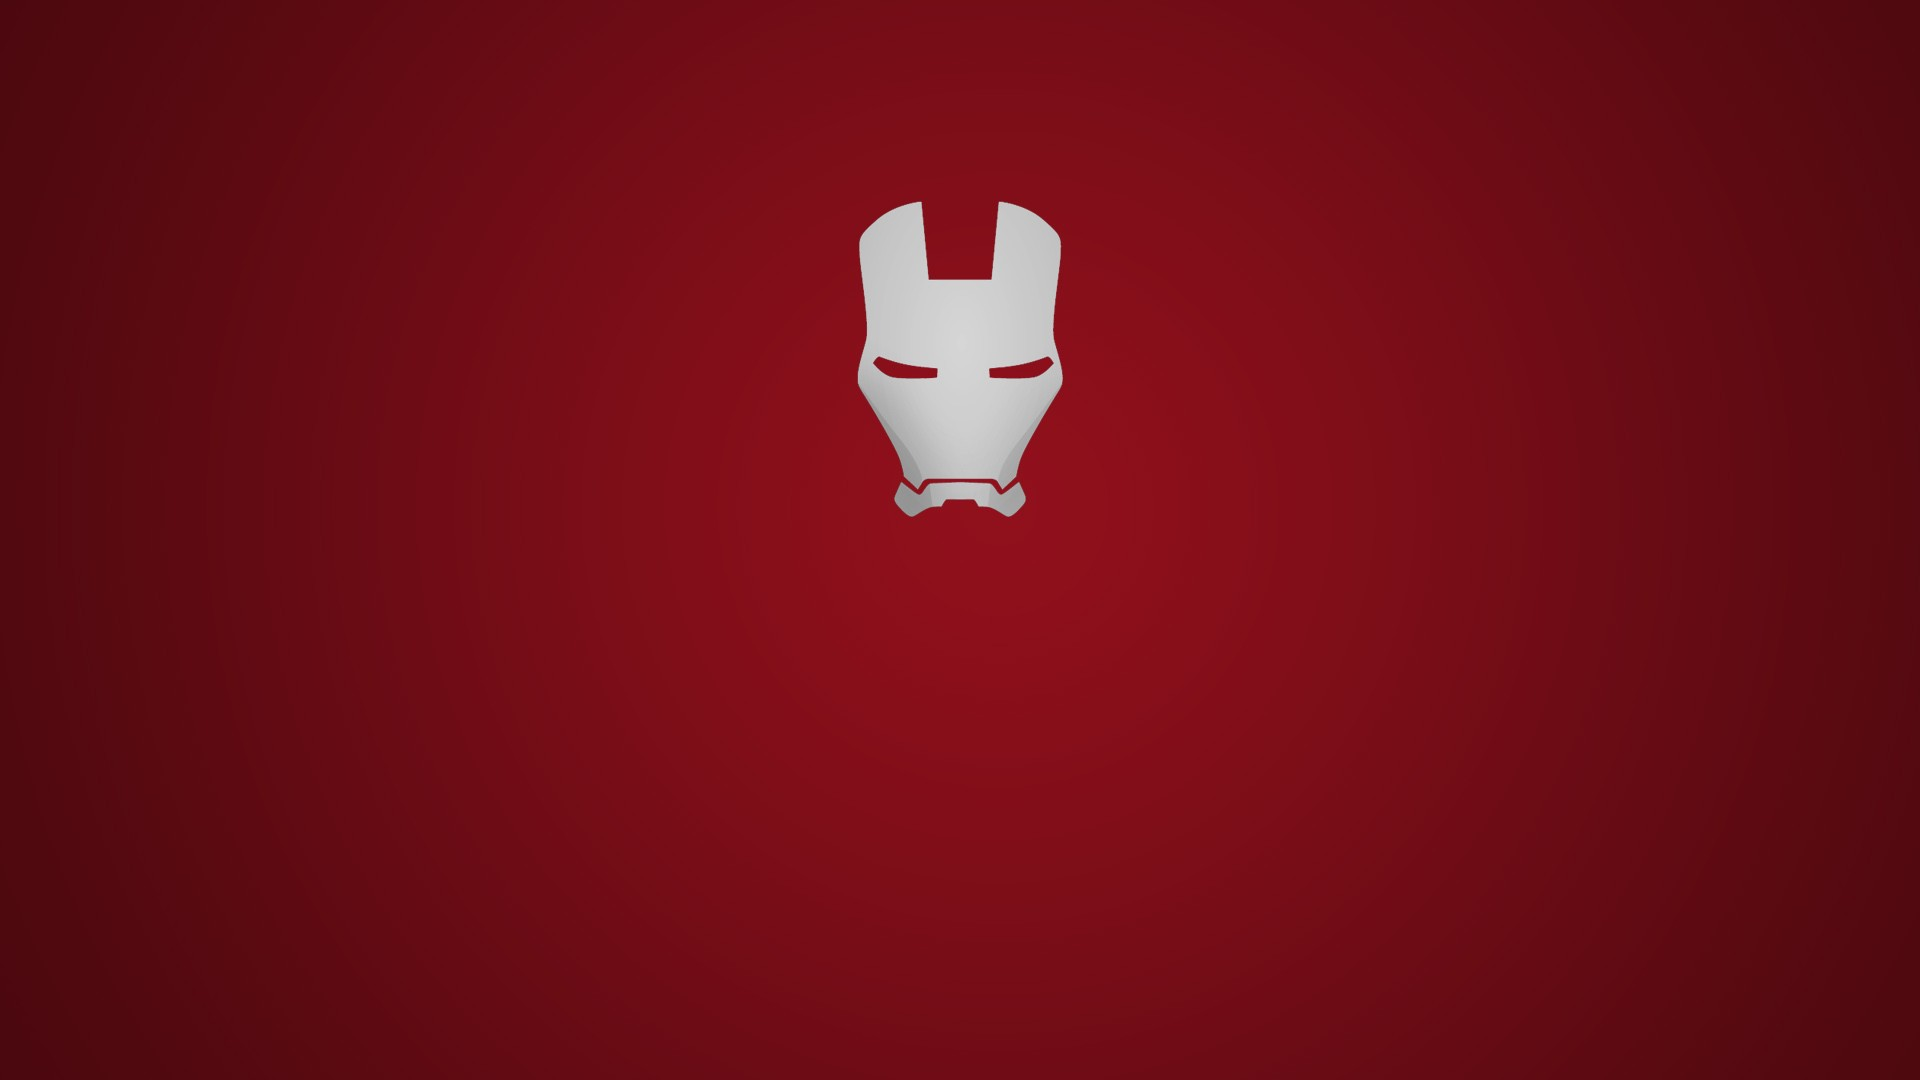 1920x1080 Iron Man Simple 1 Laptop Full Hd 1080p Hd 4k Wallpapers